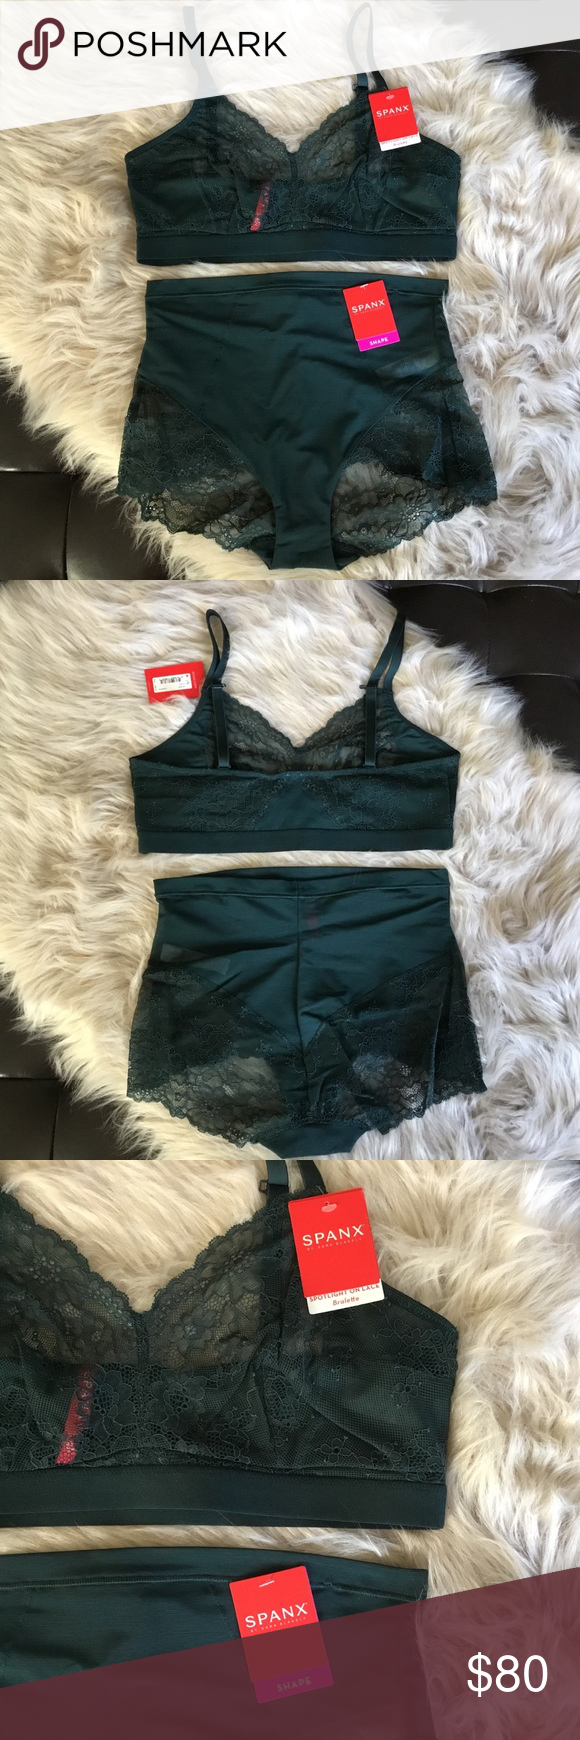 c8b188e968b Spanx Lace Bralette   Panty Set Size Large Green New With Tags - Spanx  Spotlight On